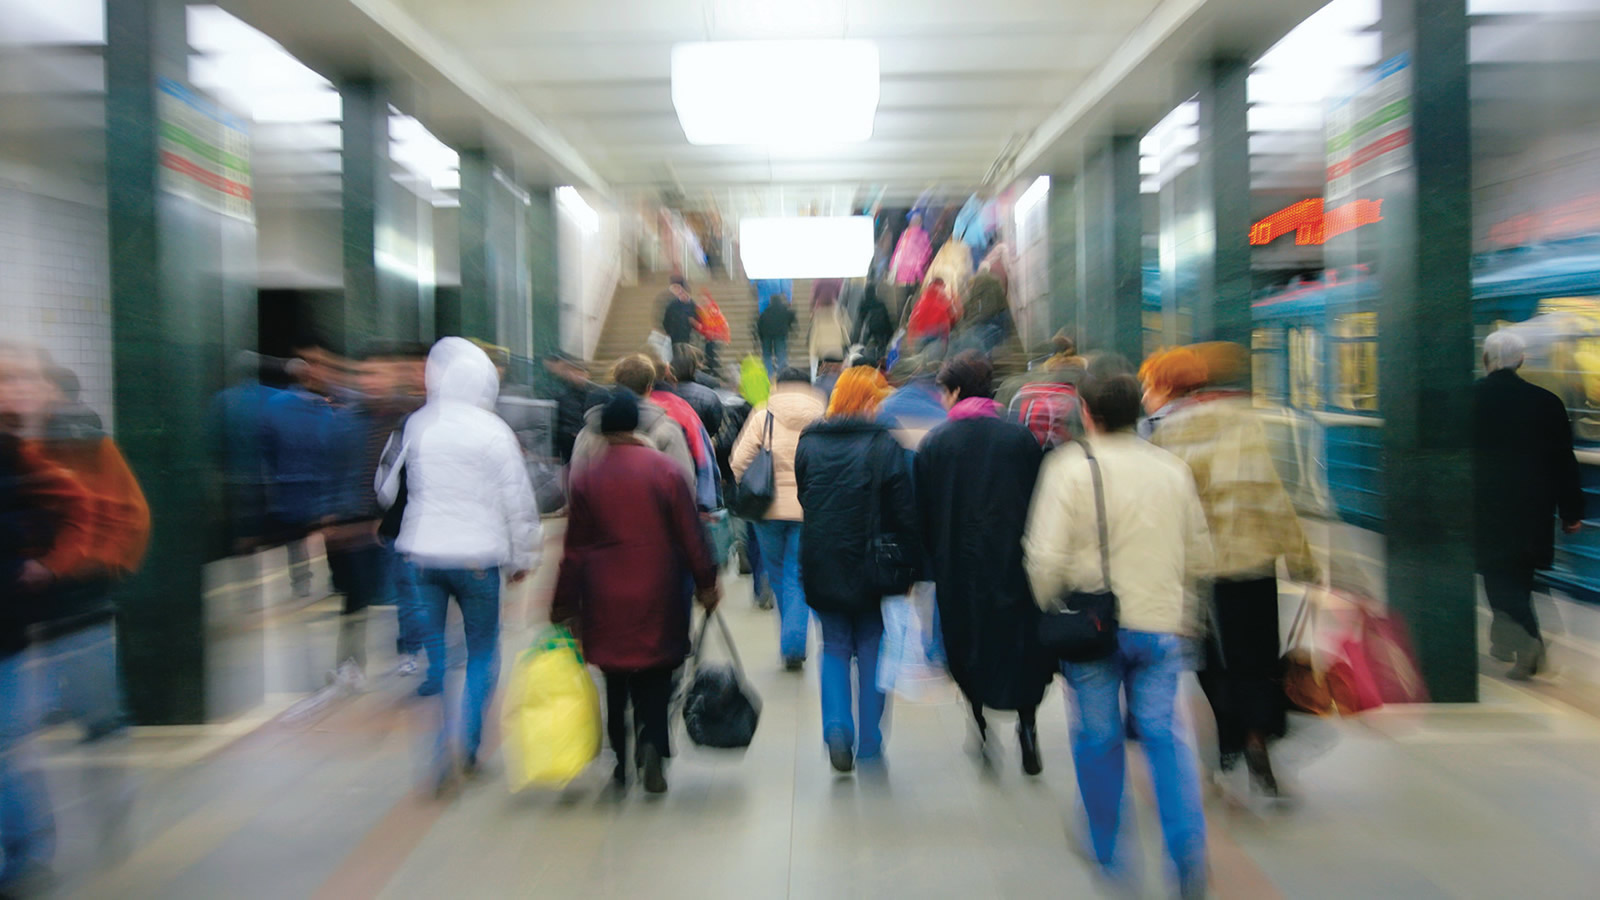 People Walking on the Subway (blurred)